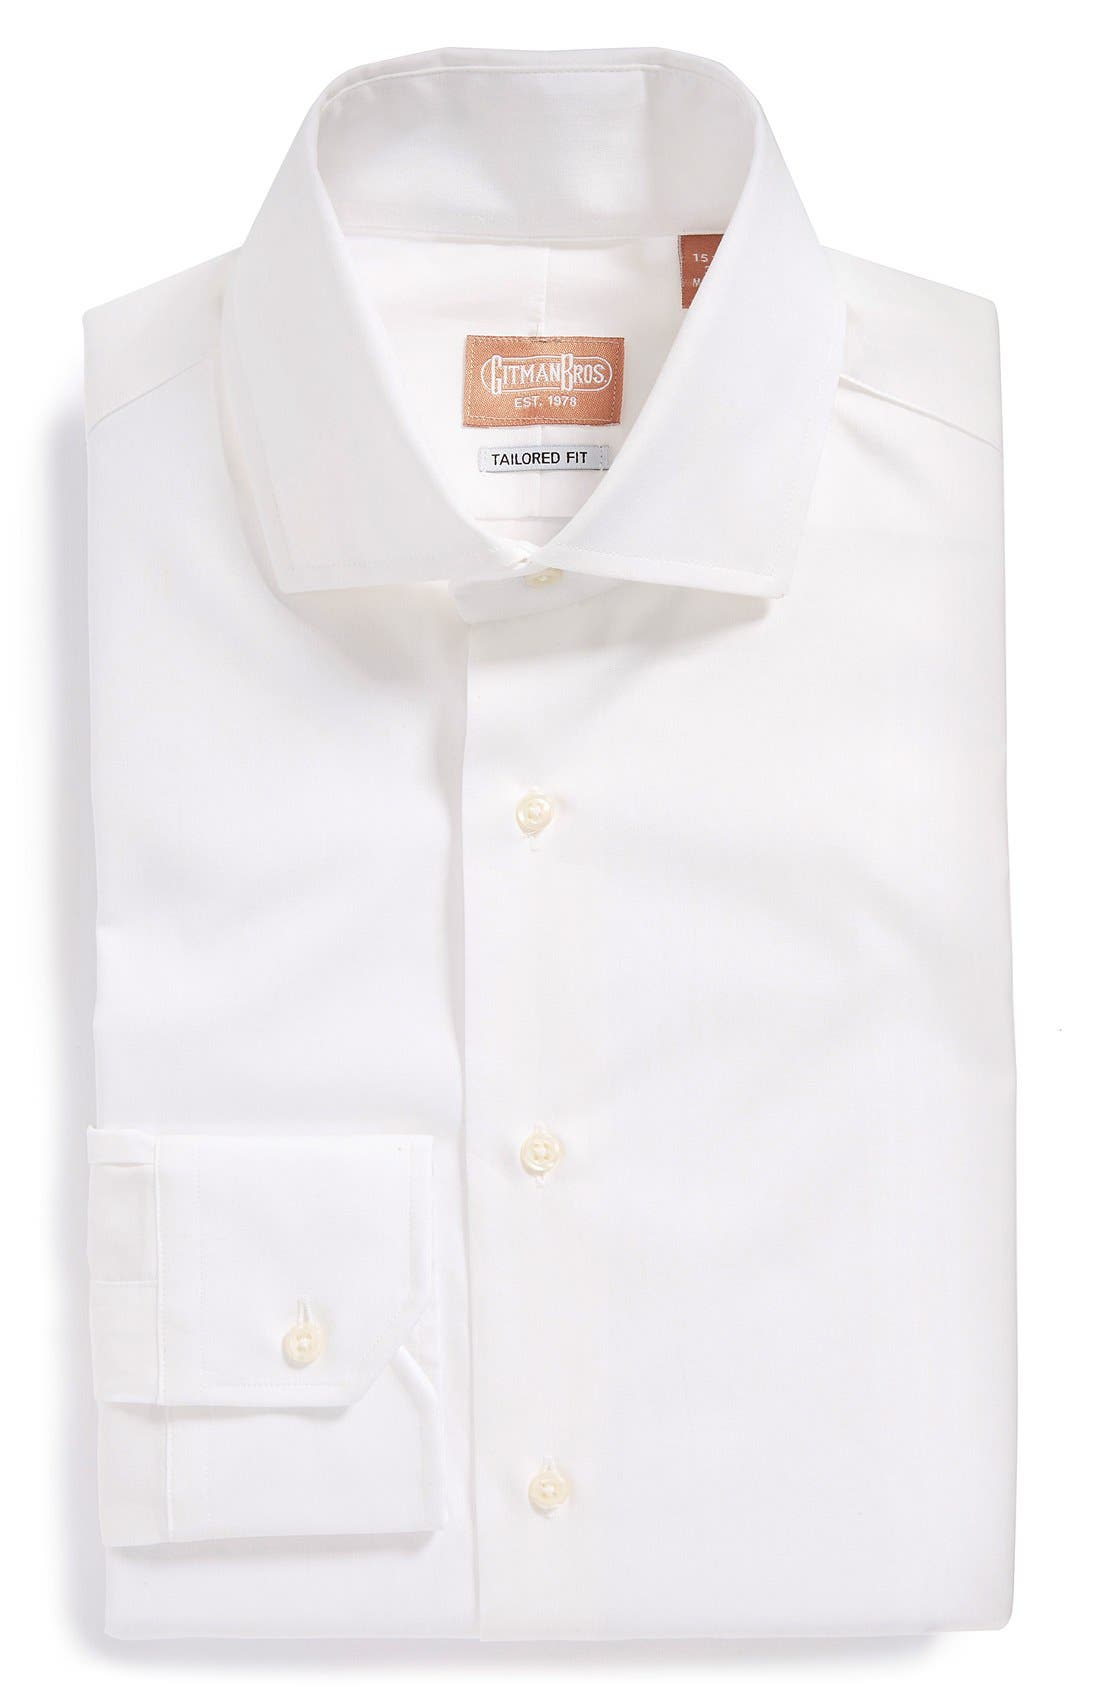 Tailored Fit Dress Shirt,                             Main thumbnail 1, color,                             WHITE